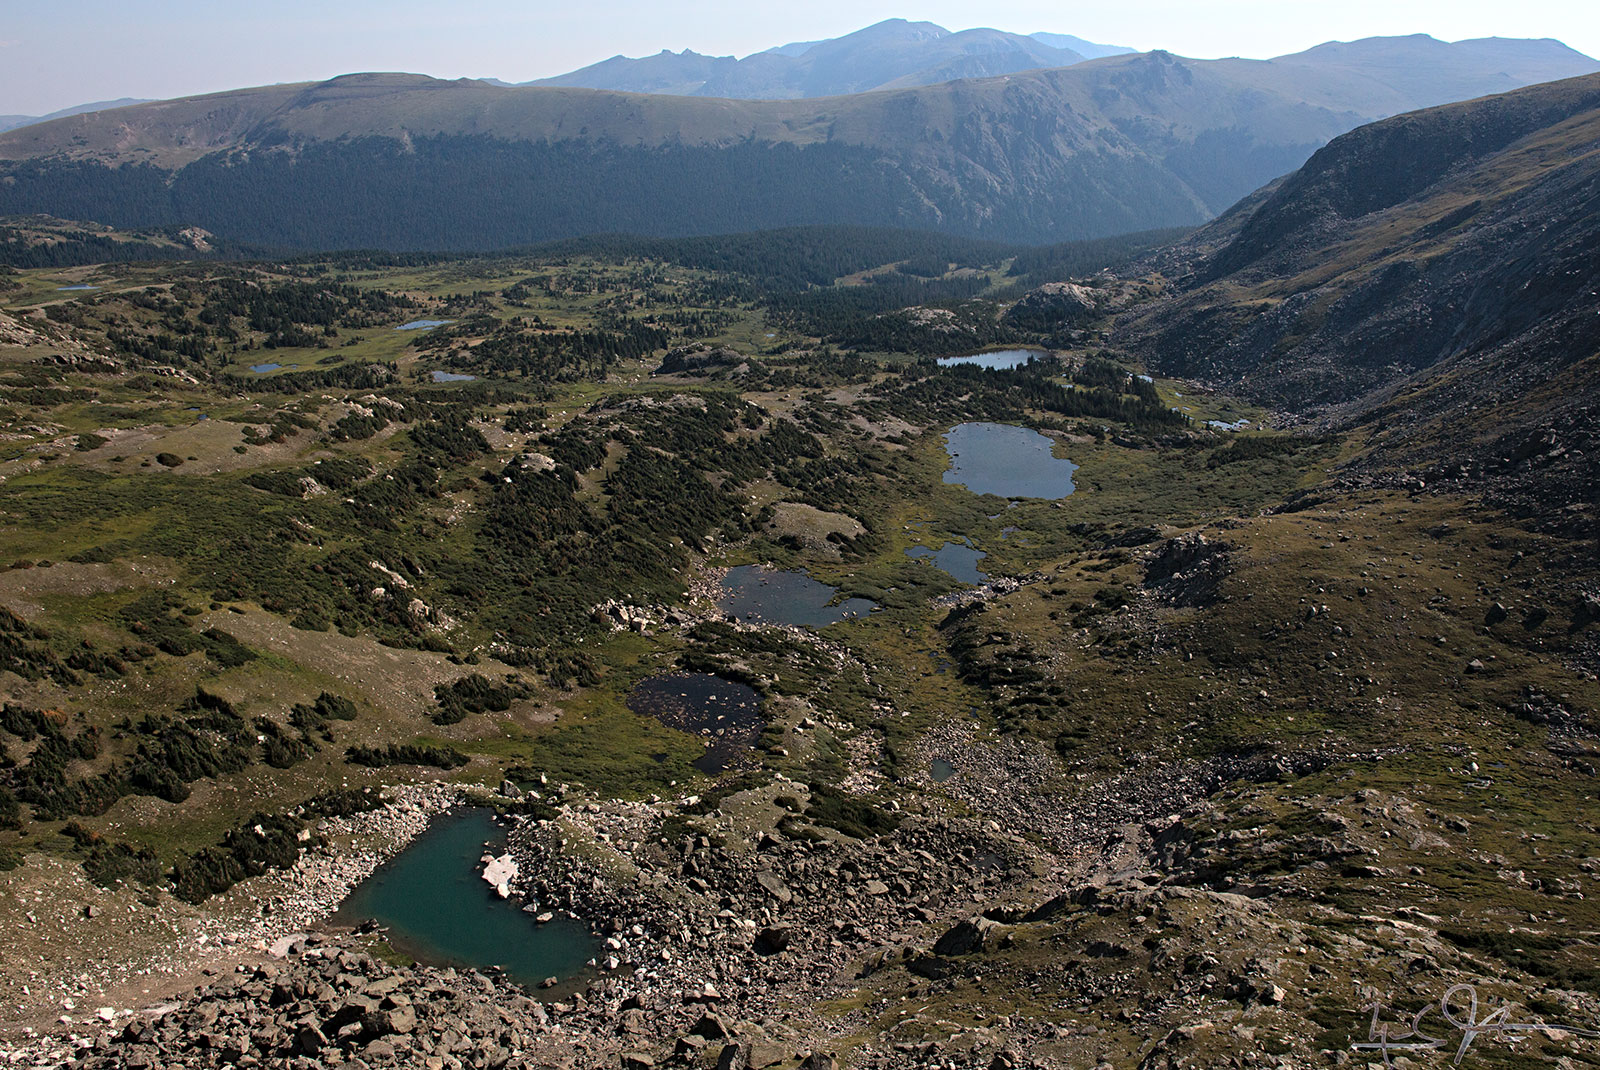 Looking from the Continental Divide over a few unnamed lakes towards Forest Canyon, with Trail Ridge and Trail Ridge Road in the distance.